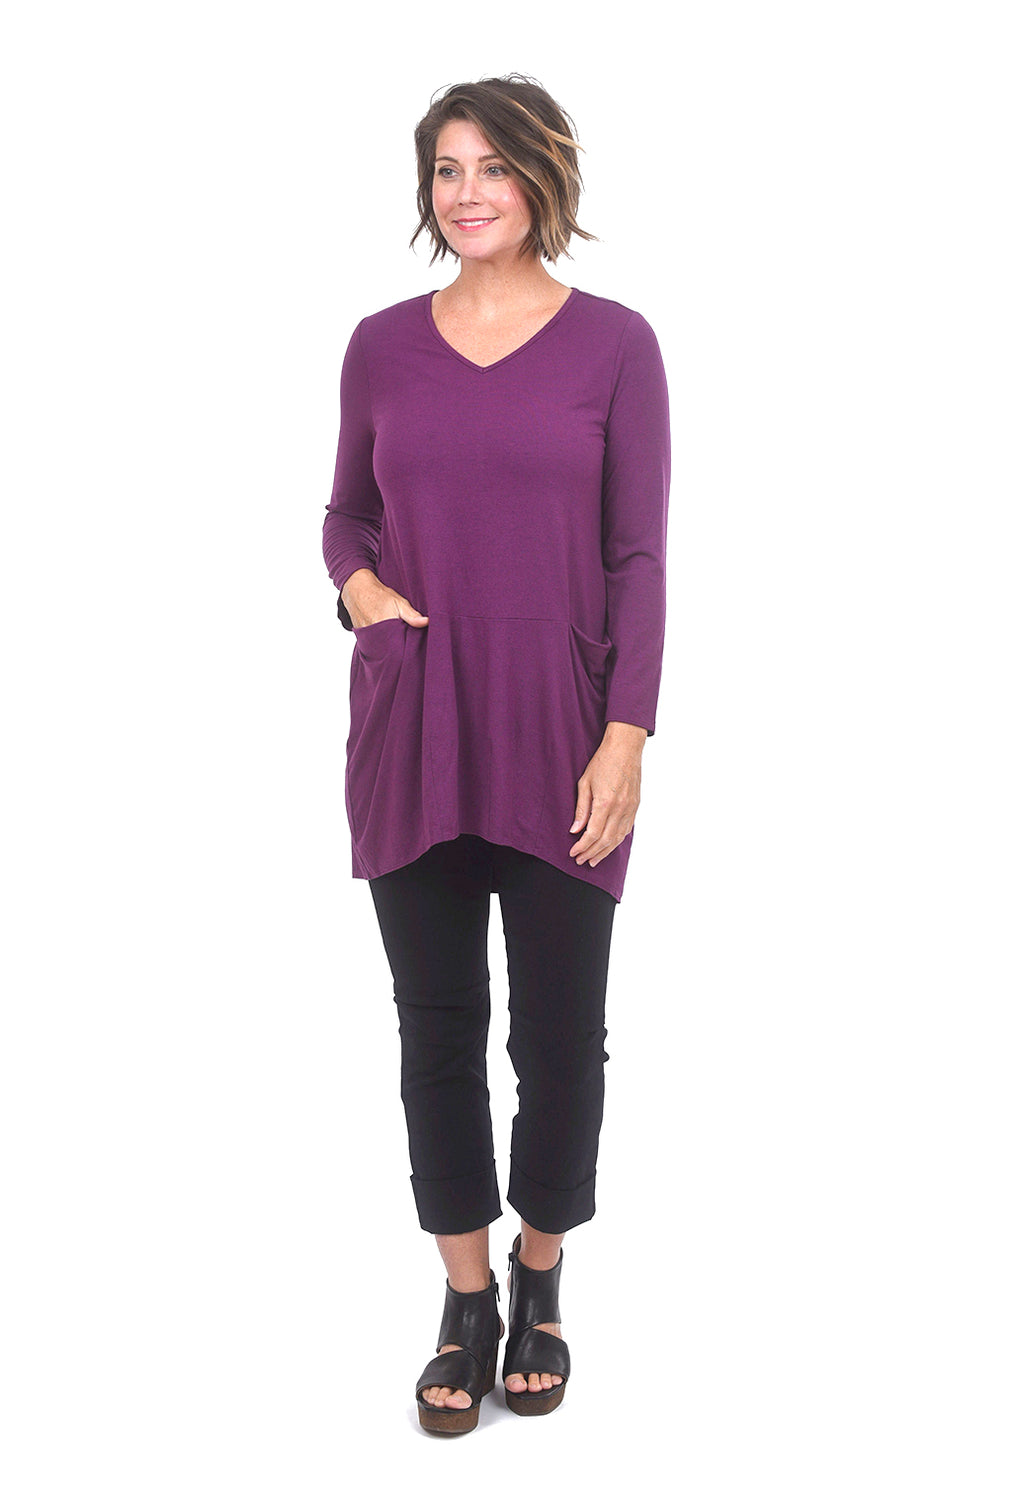 Liv by Habitat Heather Jersey Audrey Tunic, Plum